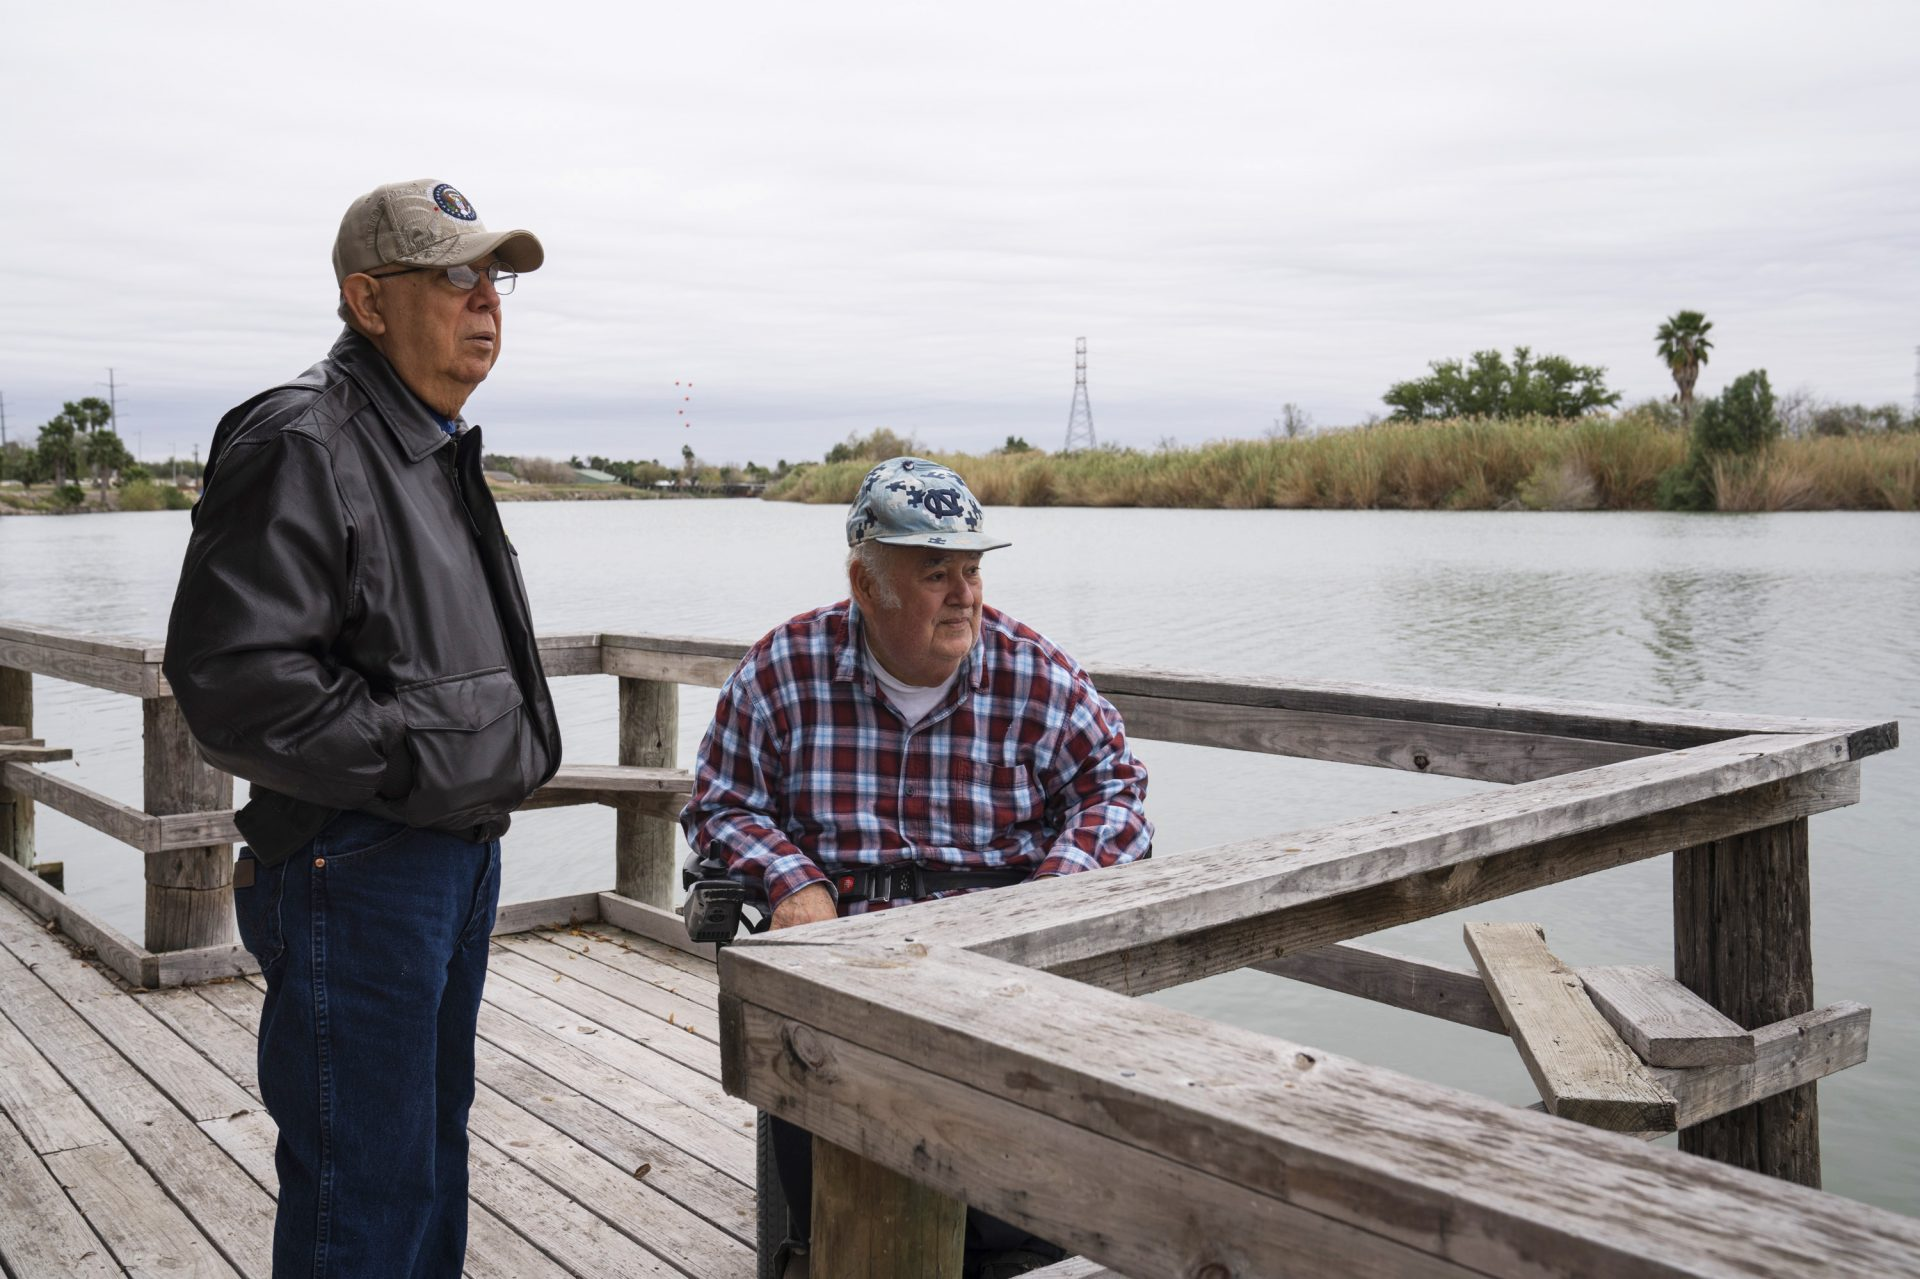 Cousins Rey Anzaldua (left) and Fred Cavazos own a rustic campground in Mission. The government wants to put the wall and a wide patrol zone along the north end of their property. They worry it will drive away his tenants, who may not want to be walled off from the rest of Texas.